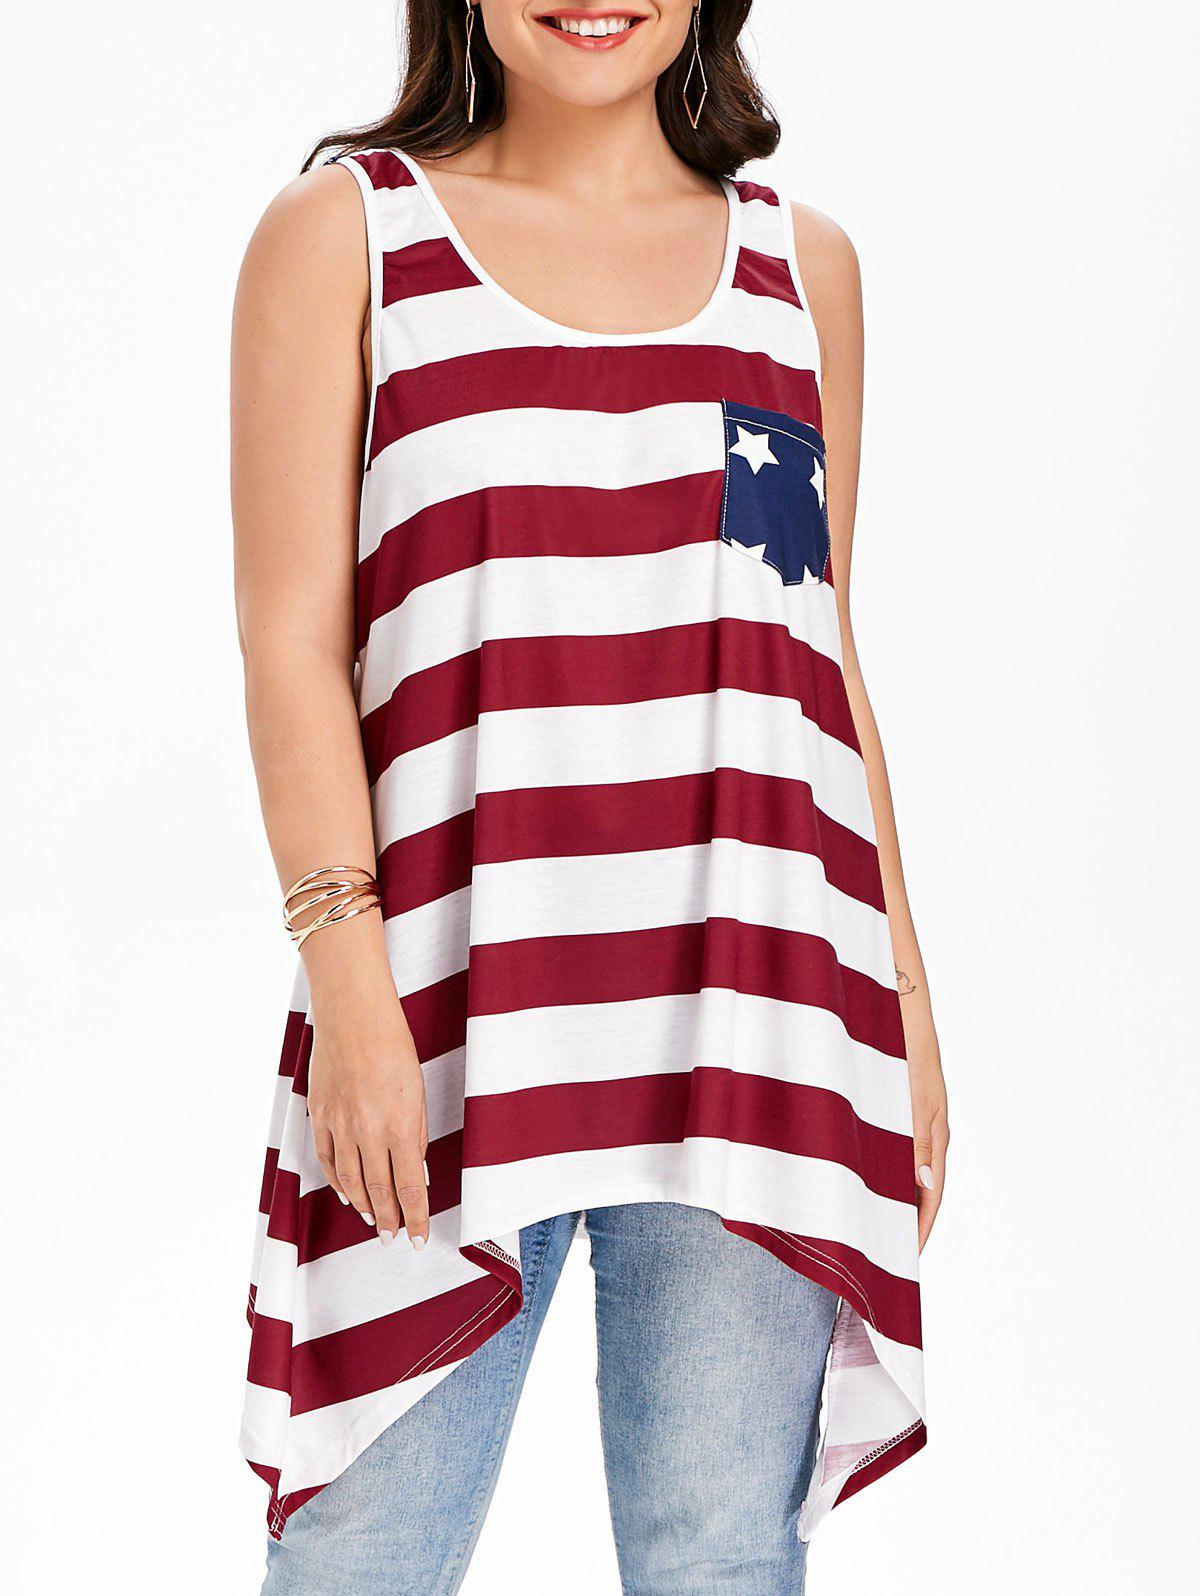 1e52377dd85 2019 Patriotic American Flag Pocket Plus Size Tank Top